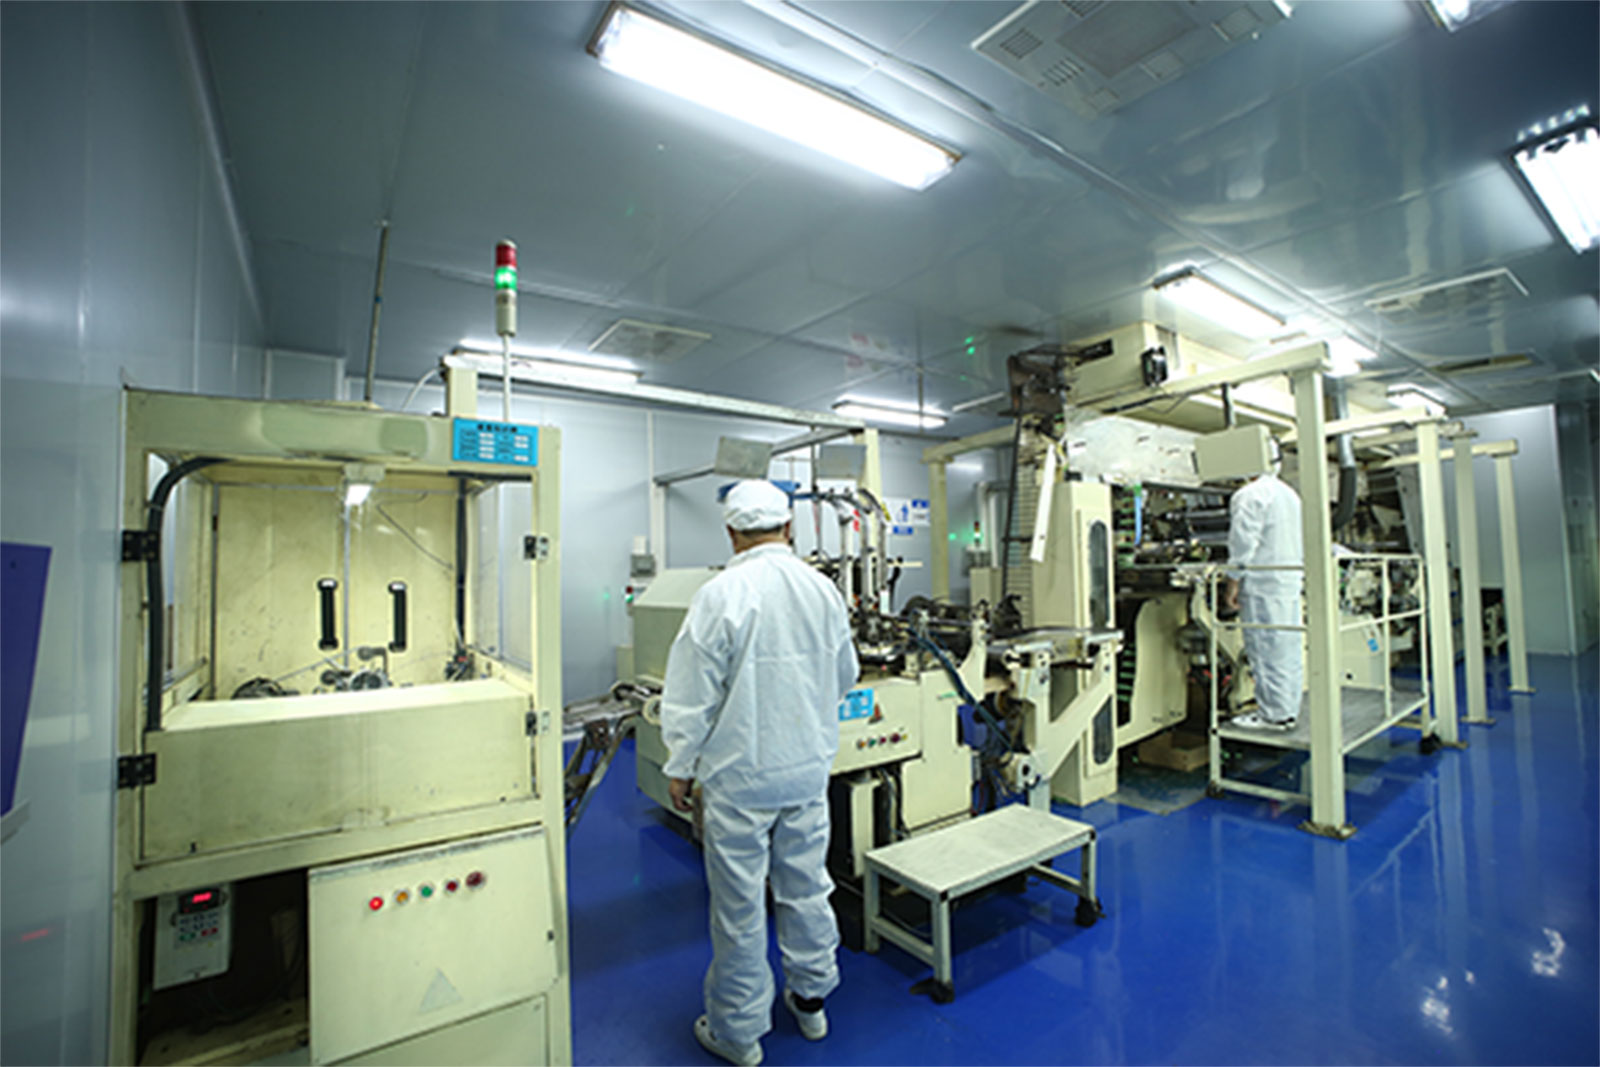 Pharmaceutical Tube Production in Cleanroom